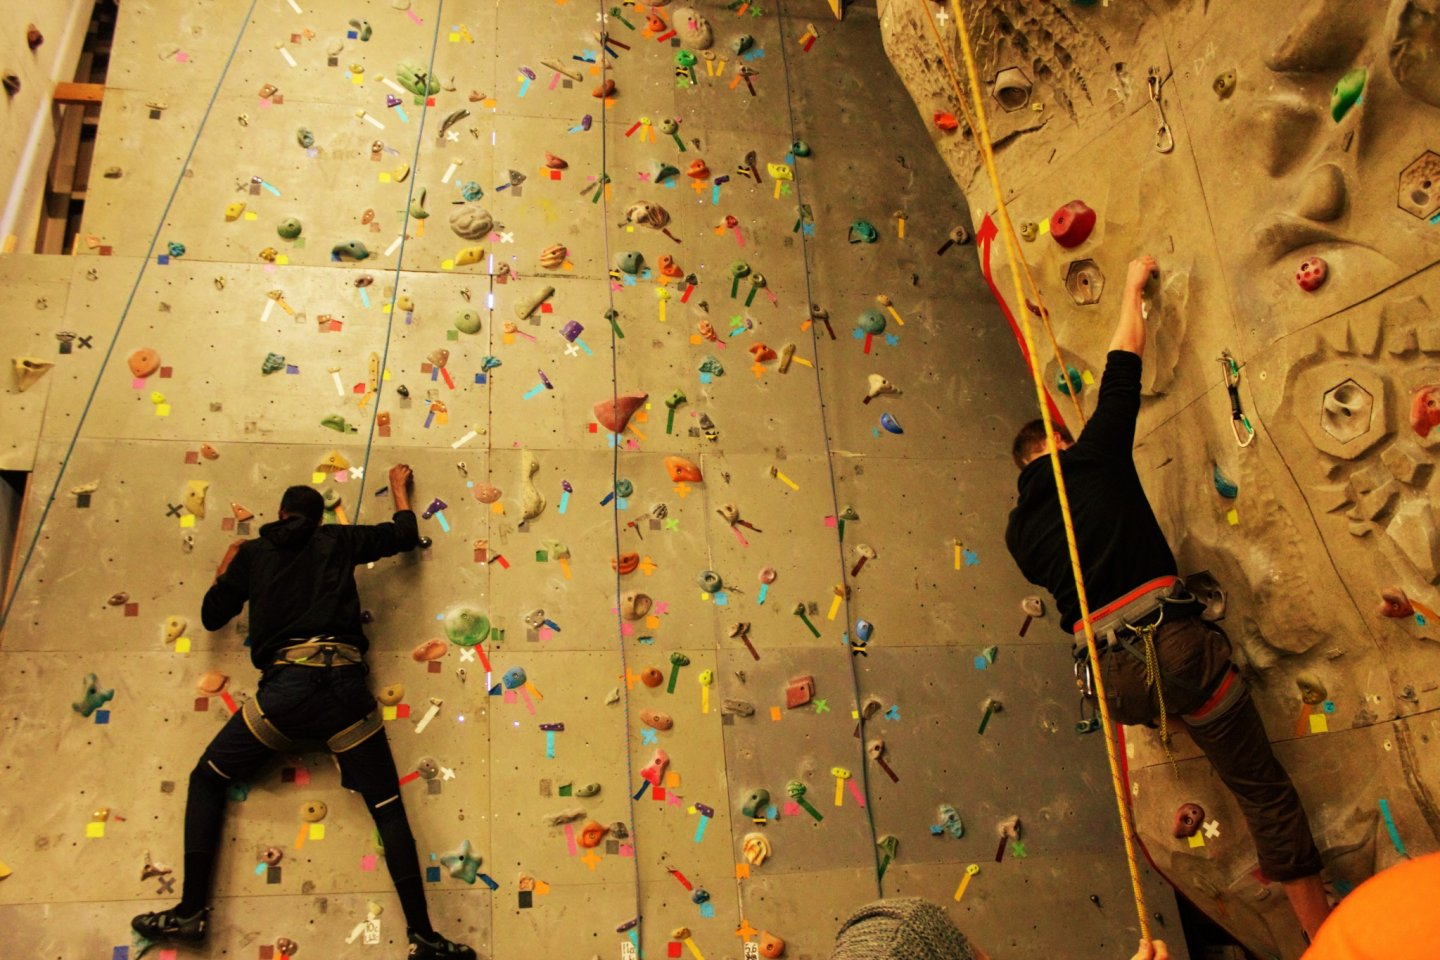 Two climbers heading up the wall.